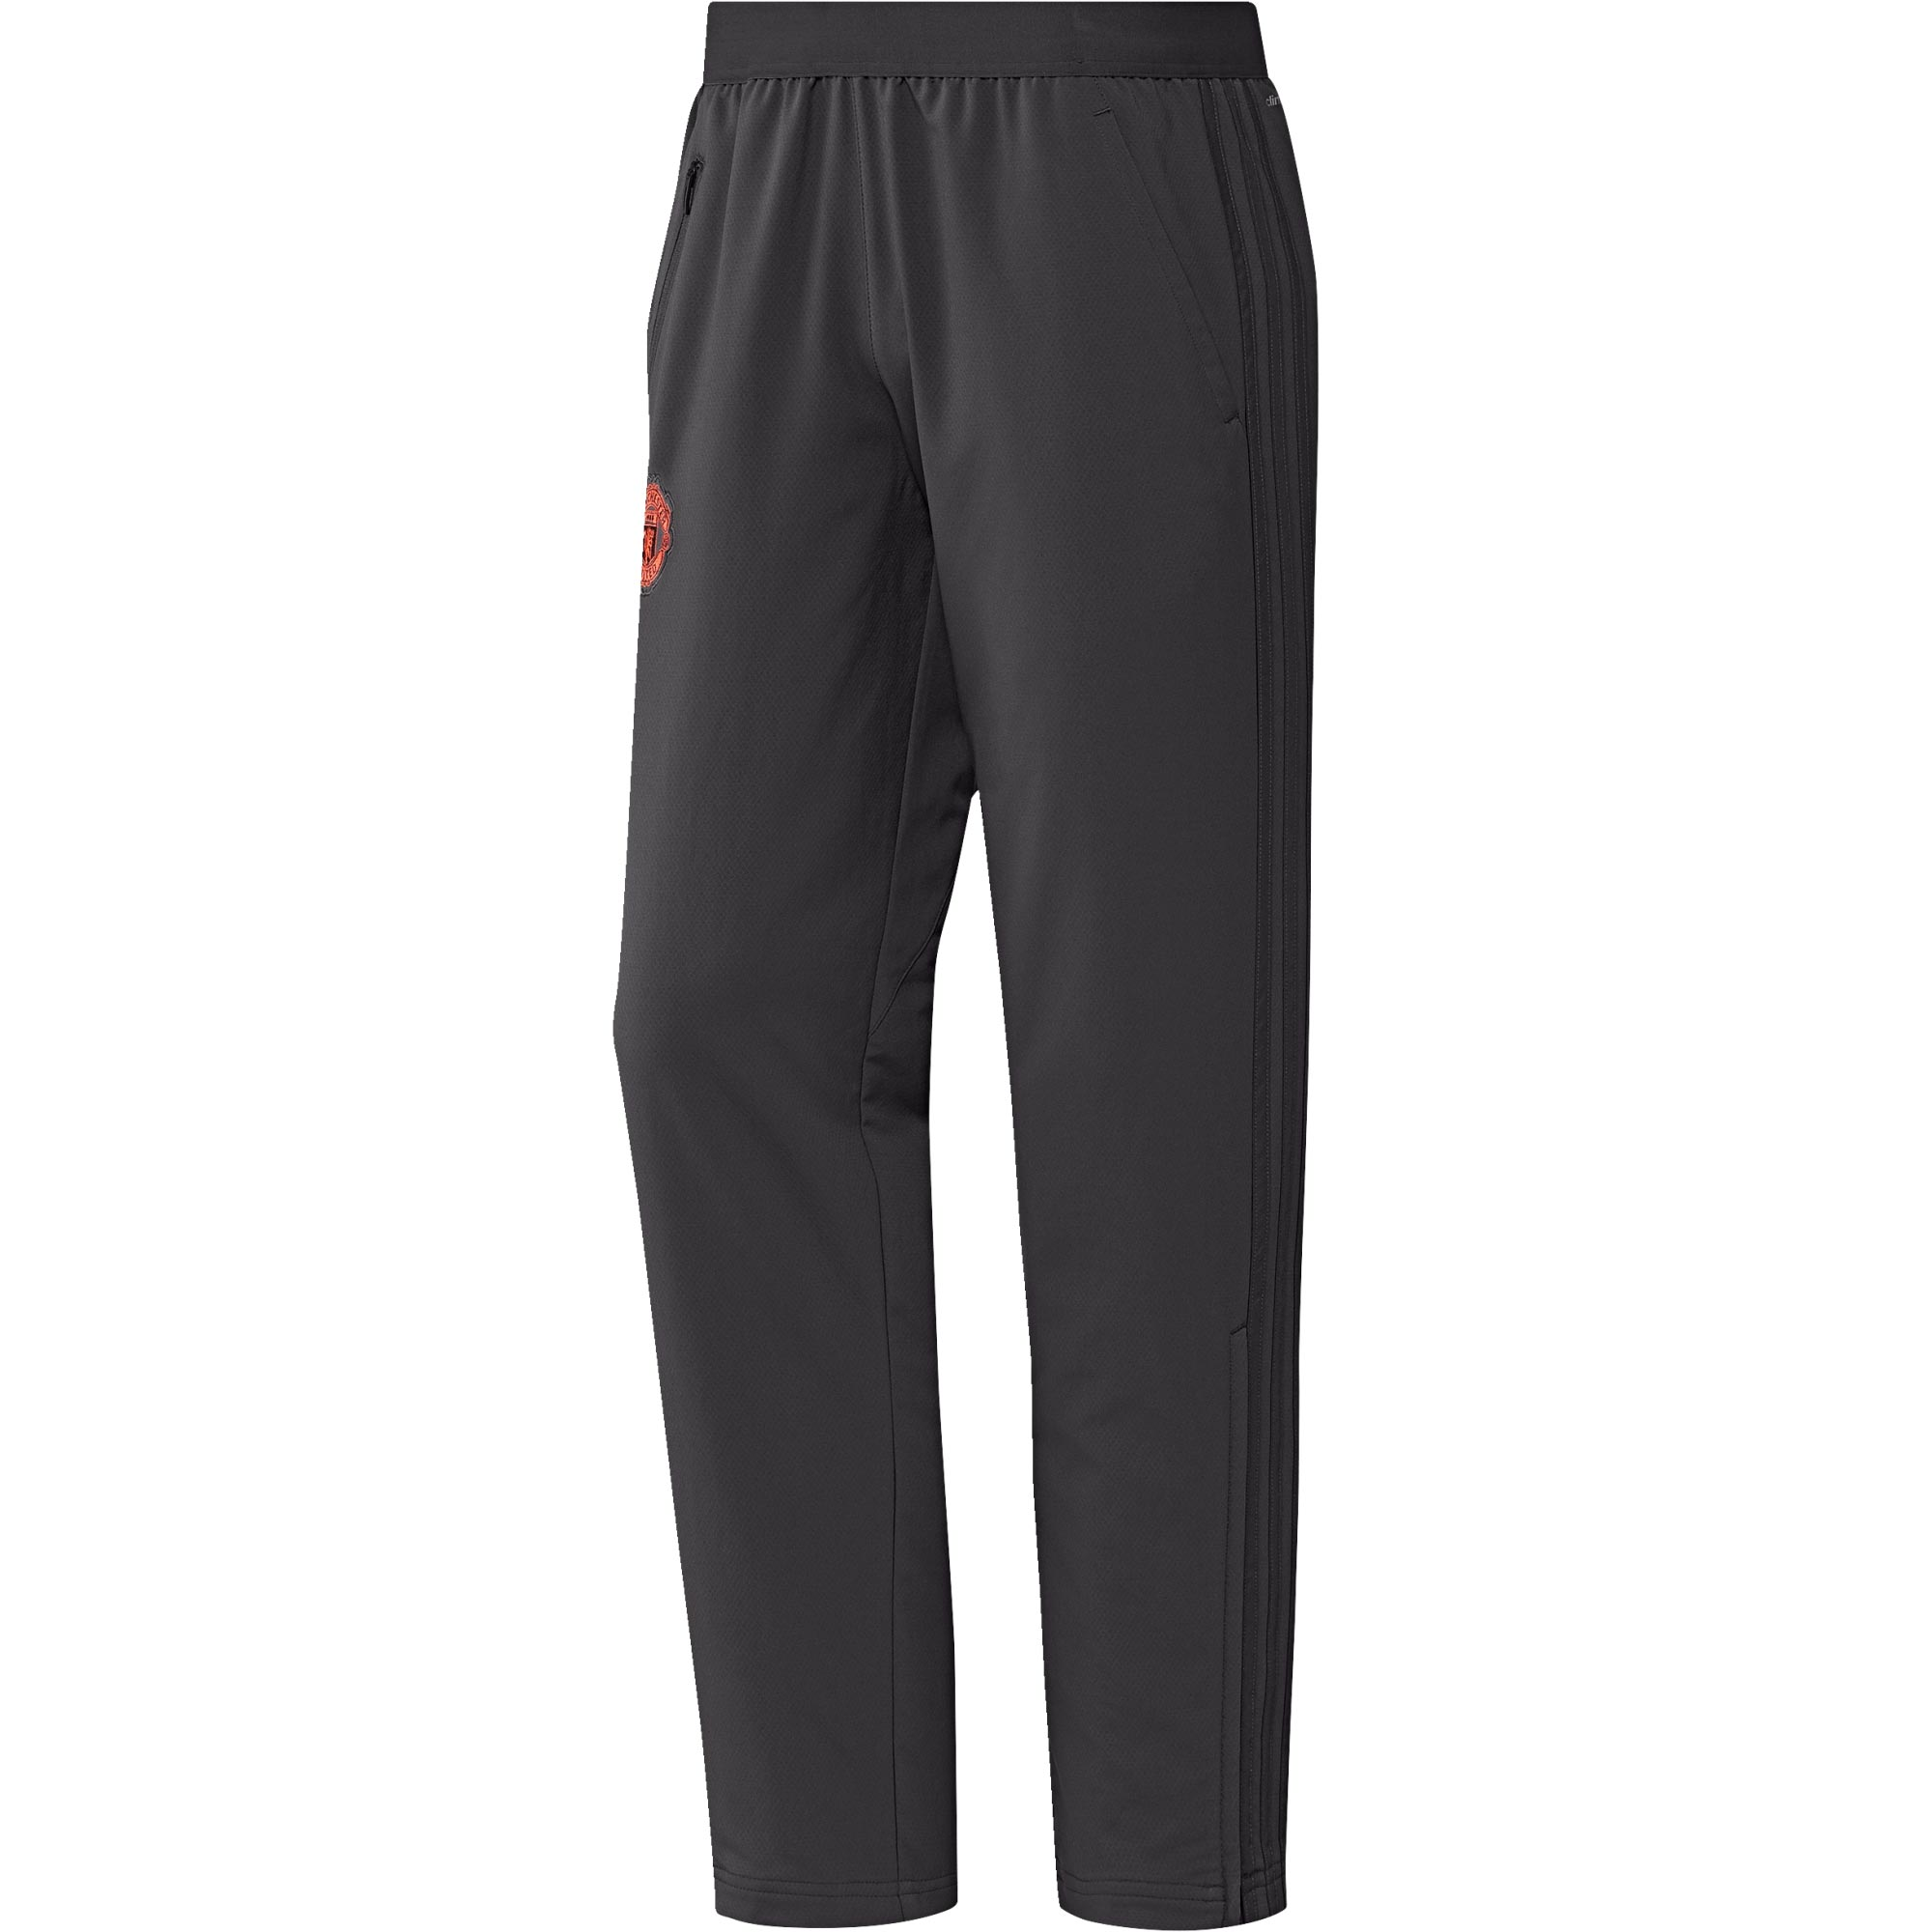 Manchester United Cup Training Presentation Pants - Black - Kids